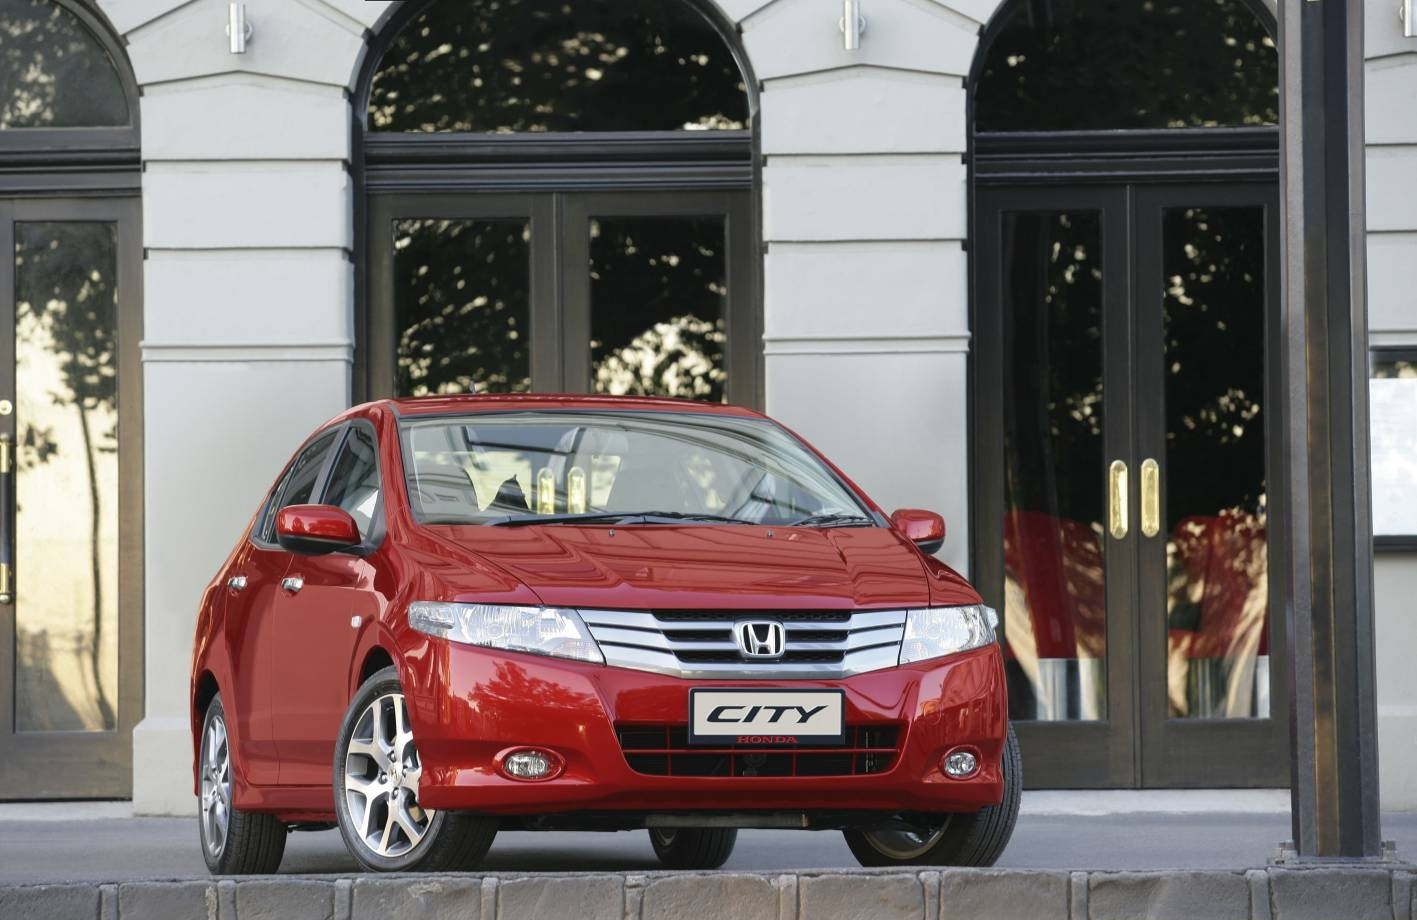 Honda City Price in Pakistan 2021